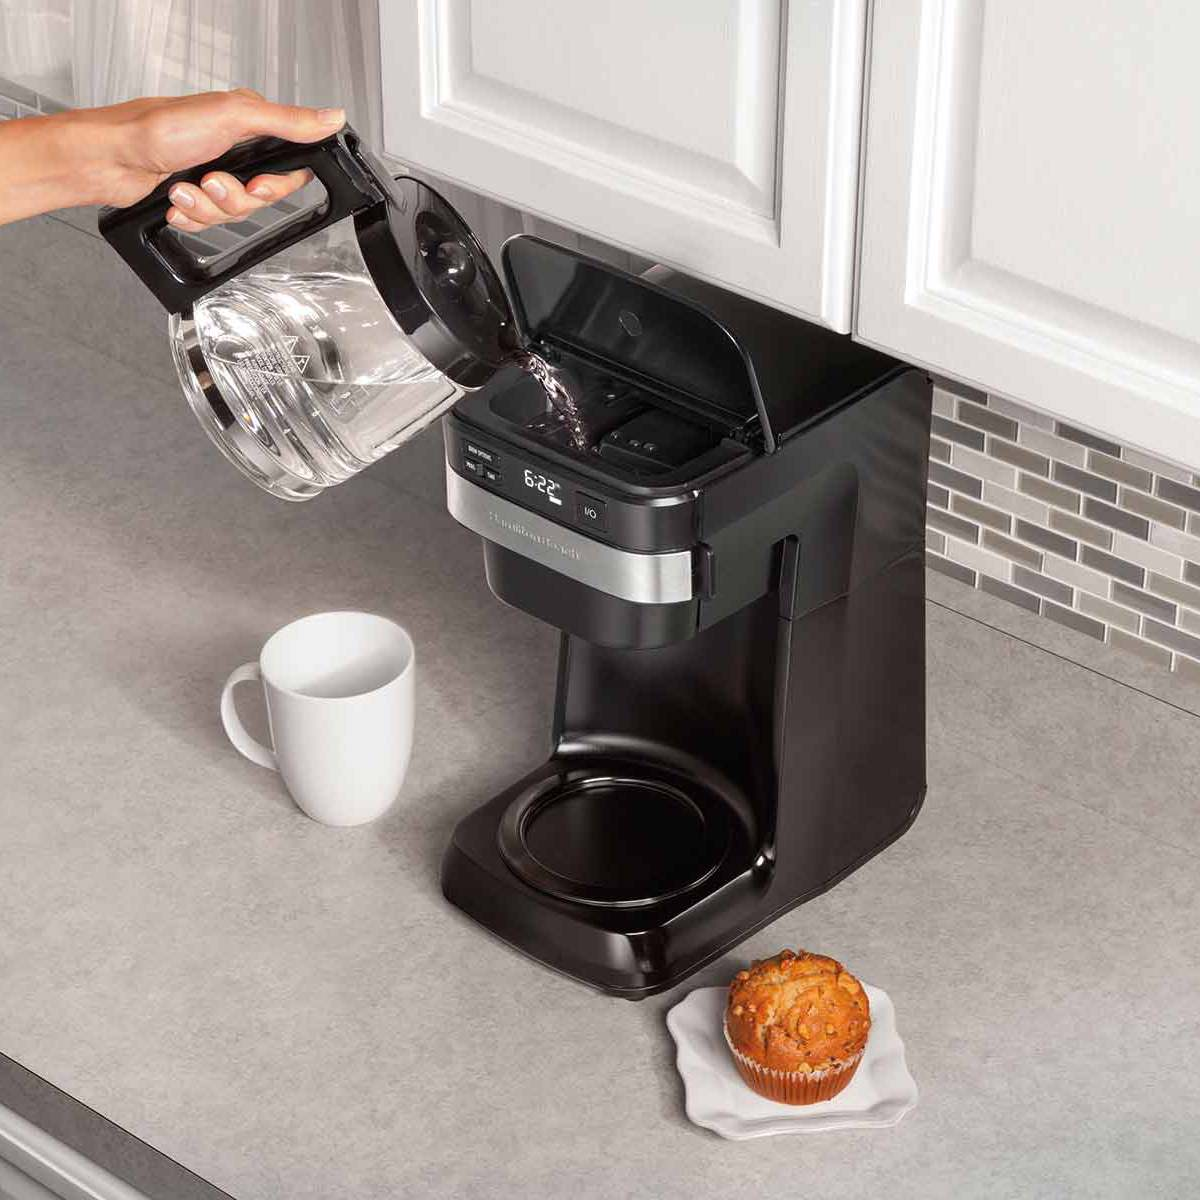 Programmable Easy Access Coffee Maker (46300)